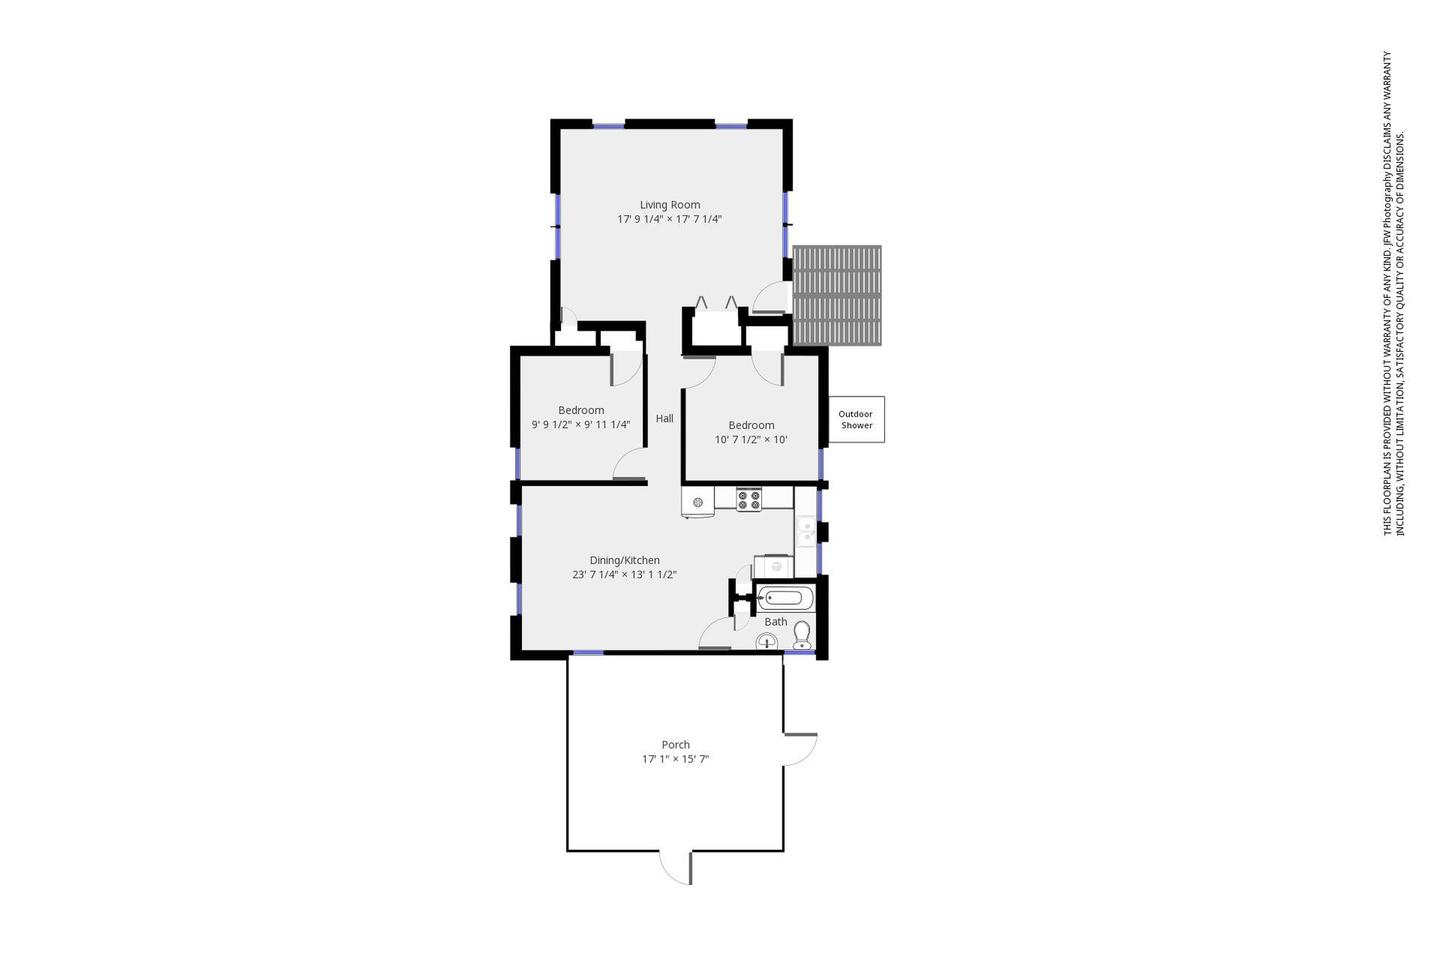 Floor plan of the Le Count Beach HouseThe Le Count Beach House offers visitors a comfortable living space